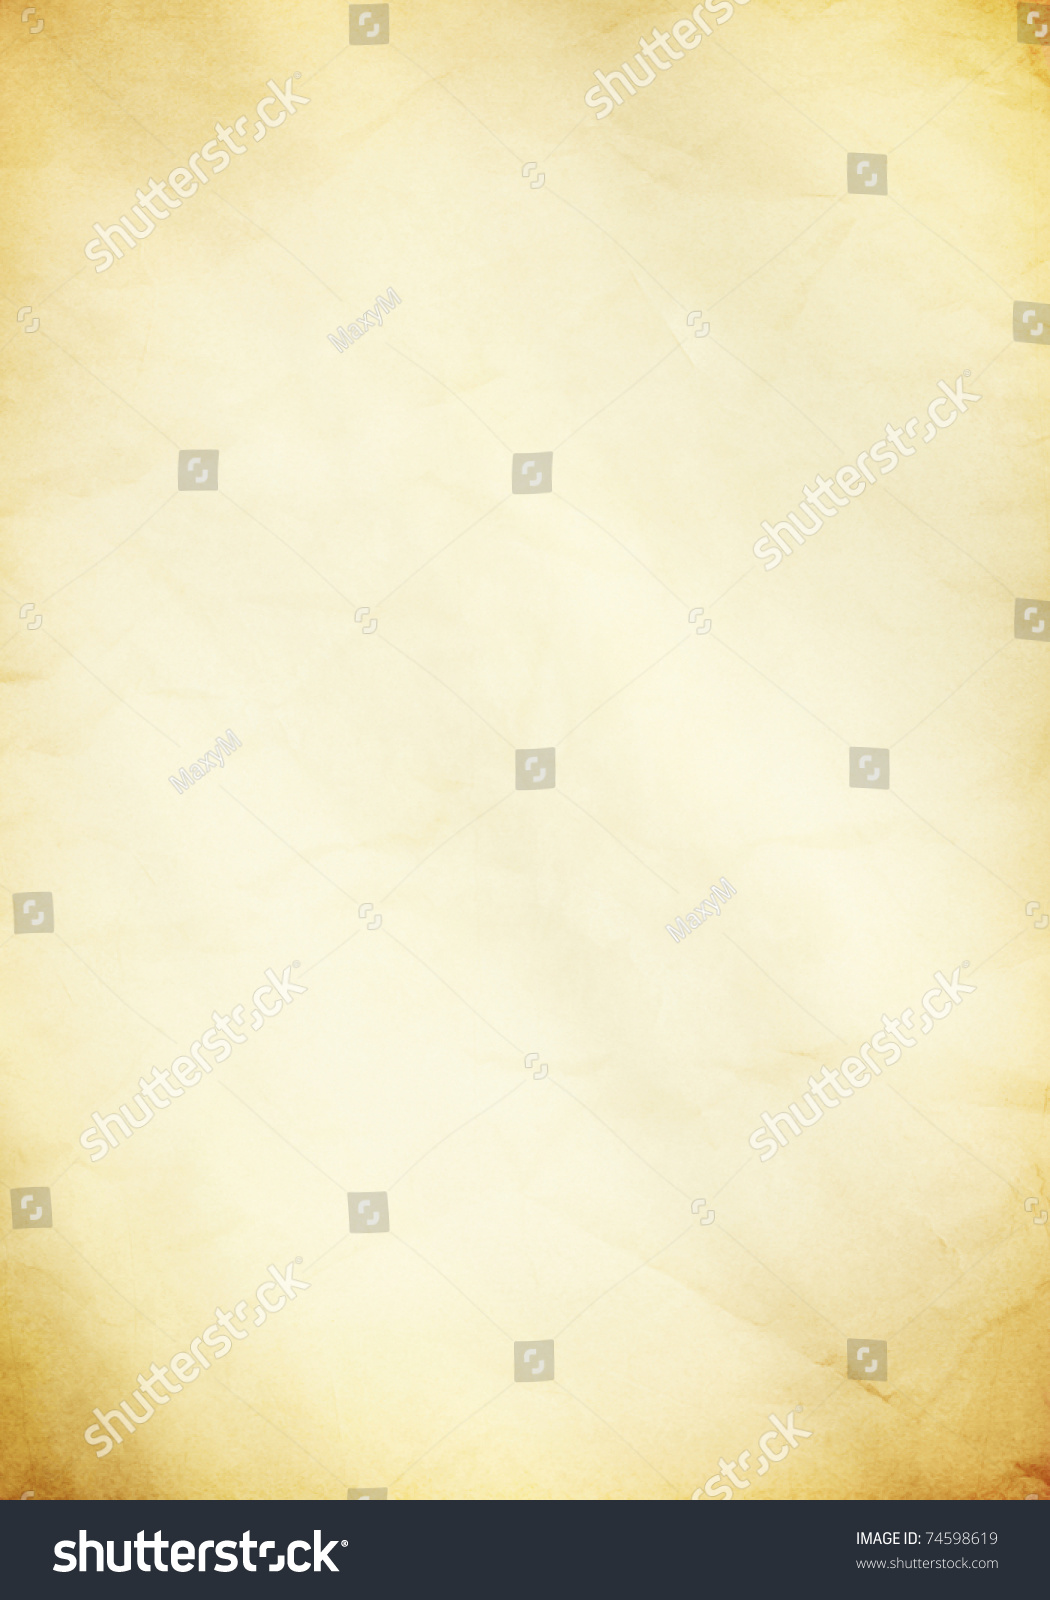 Billboard background old paper template design stock illustration billboard background old paper template design pronofoot35fo Gallery